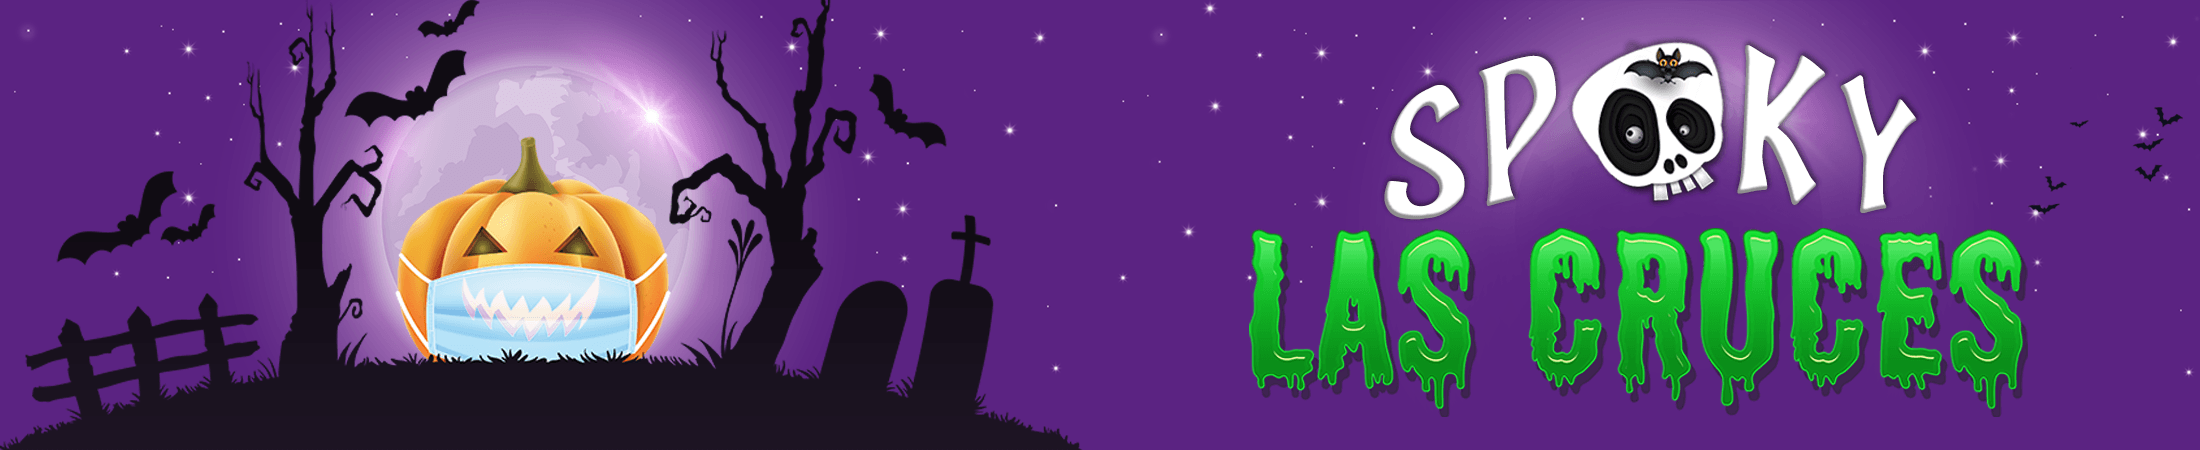 Illustration of a jack-o'-lantern wearing a surgical mask in a cemetery under the full moon